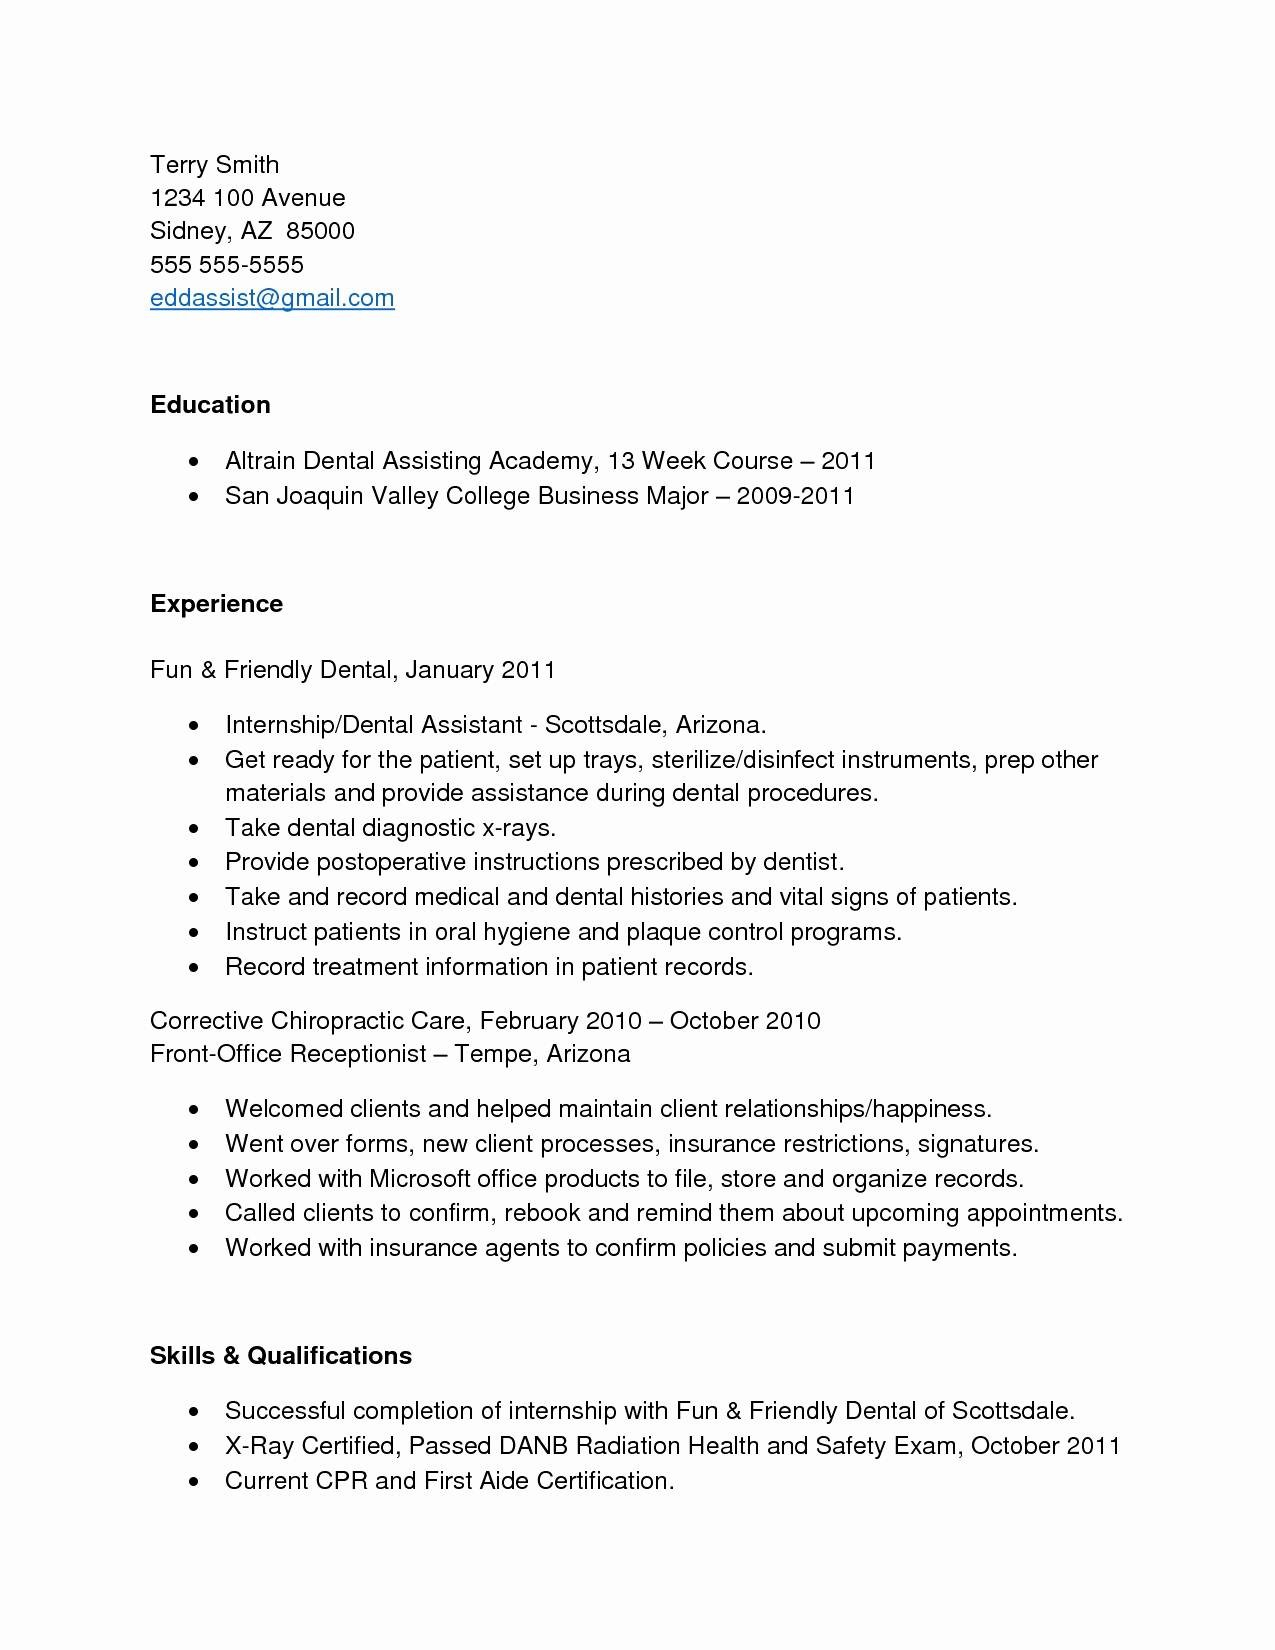 Dental assistant Resume with No Experience - Sample Resume for Dental assistant with No Experience Awesome Entry